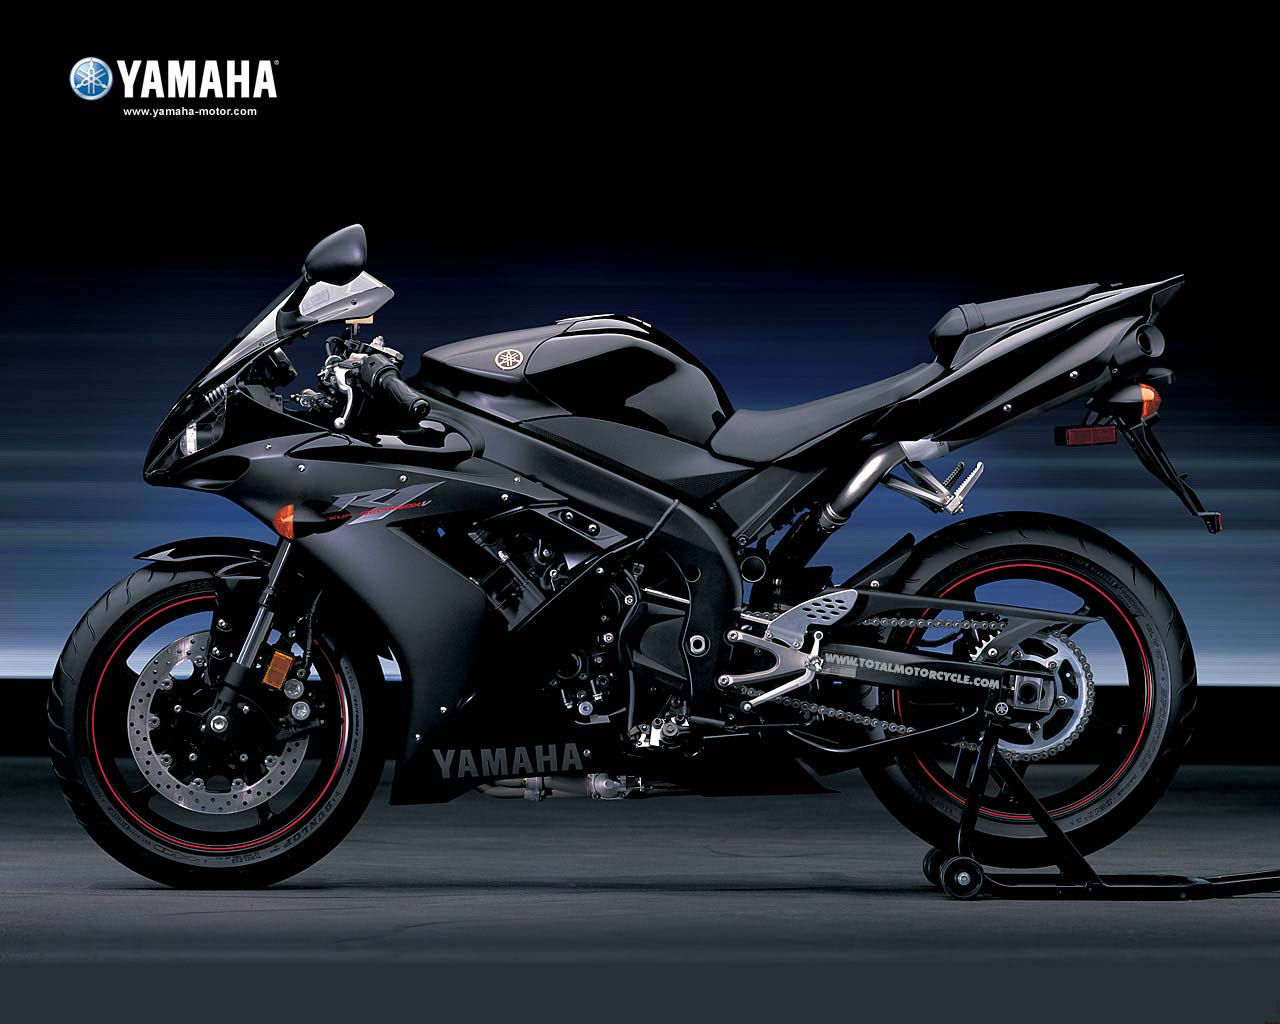 Yamaha R6 Wallpaper 7398 Hd Wallpapers in Bikes   Imagescicom 1280x1024